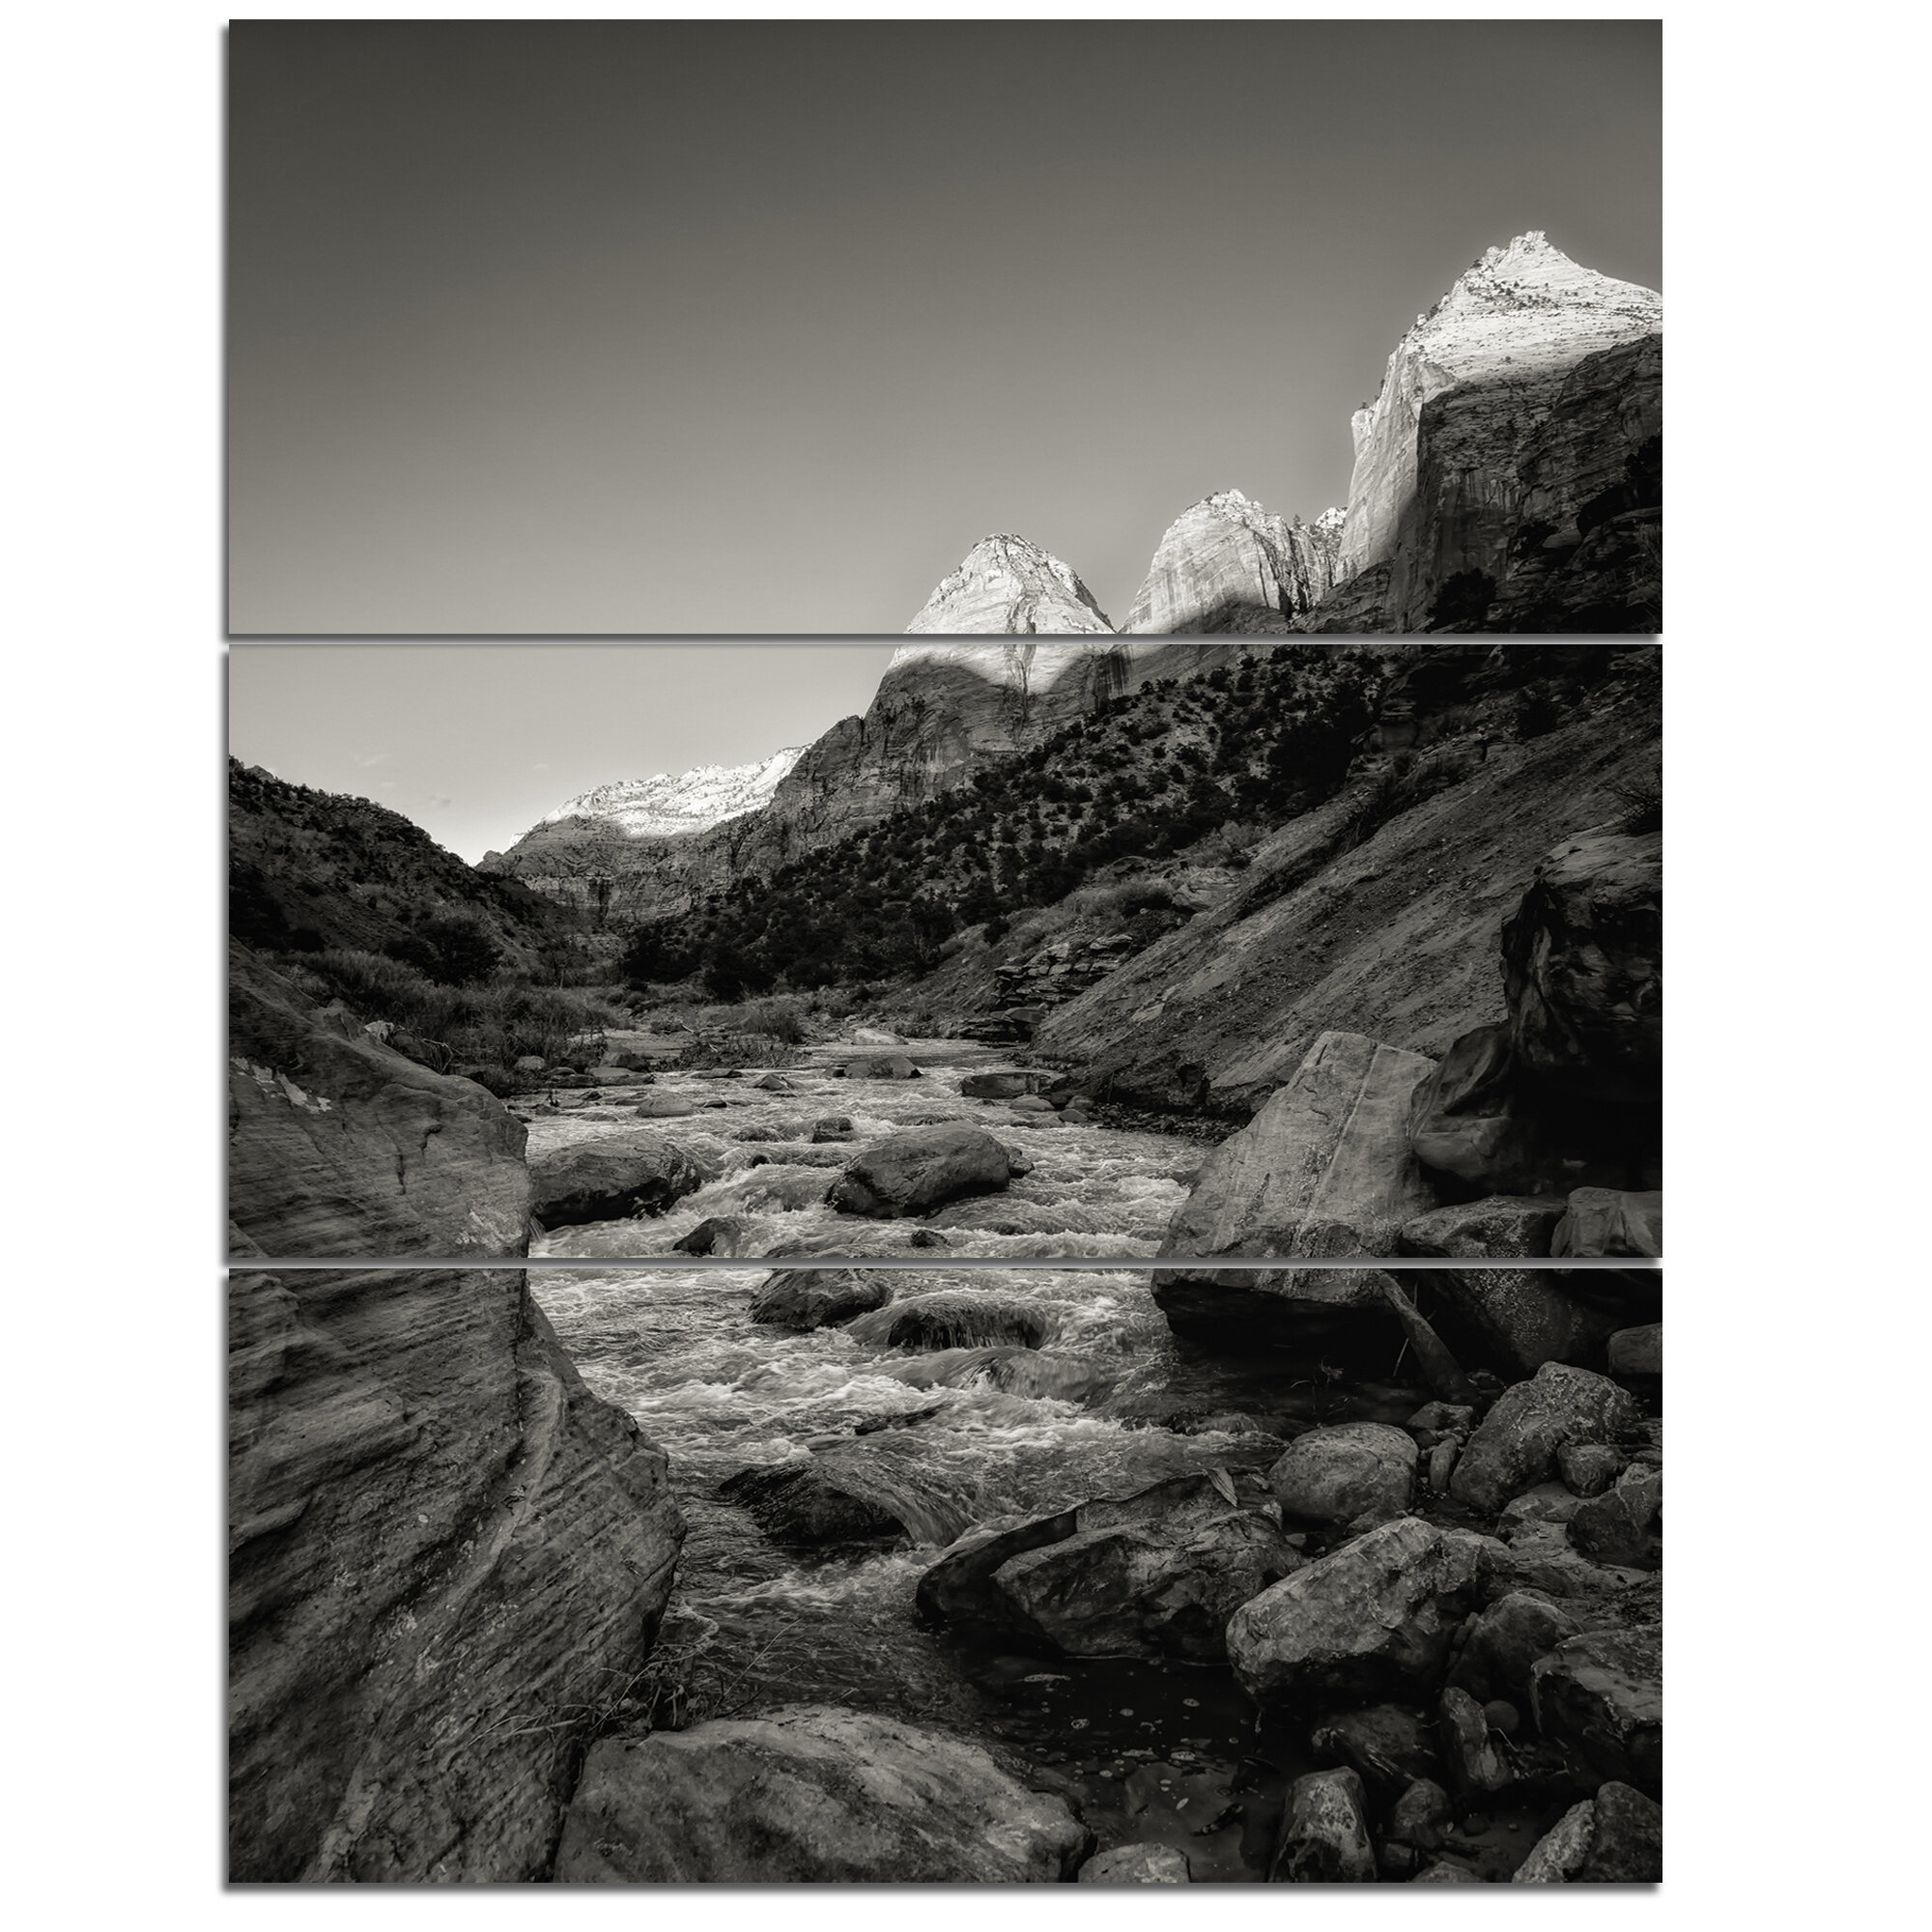 Designart Dark Rapid Virgin River Photograph Print Multi Piece Image On Canvas Wayfair